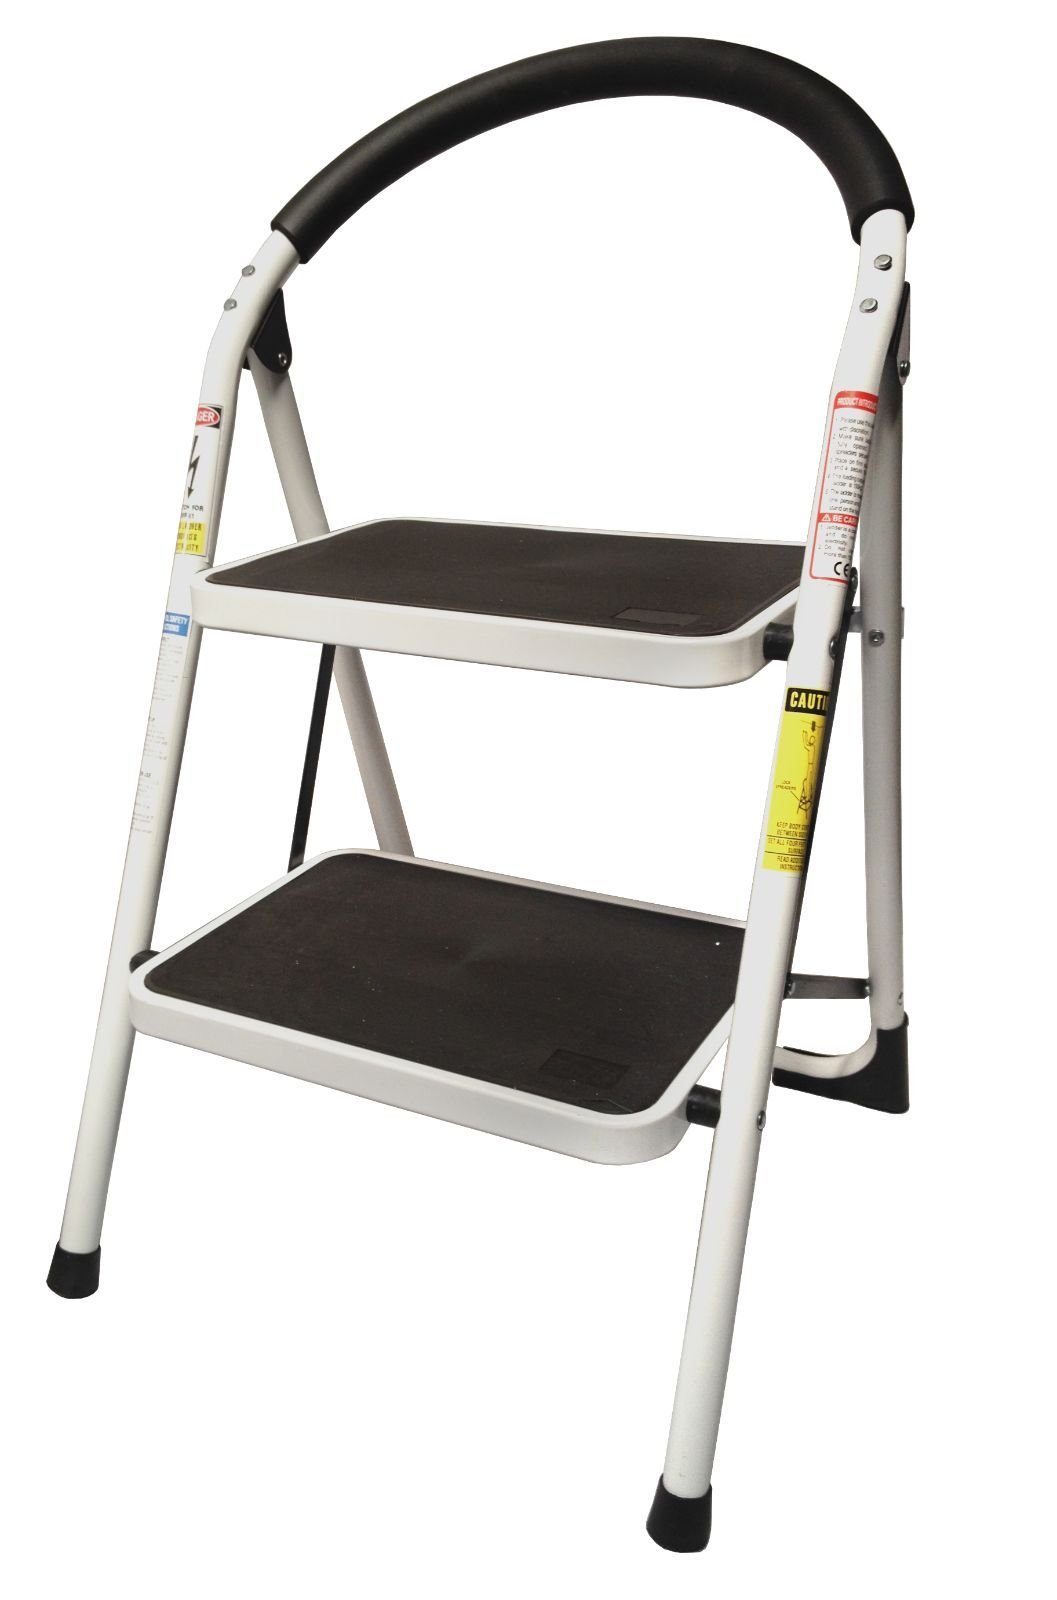 StepUp Heavy Duty Steel Reinforced Folding 2 Step Ladder Stool - 330 lbs Capacity by Step up